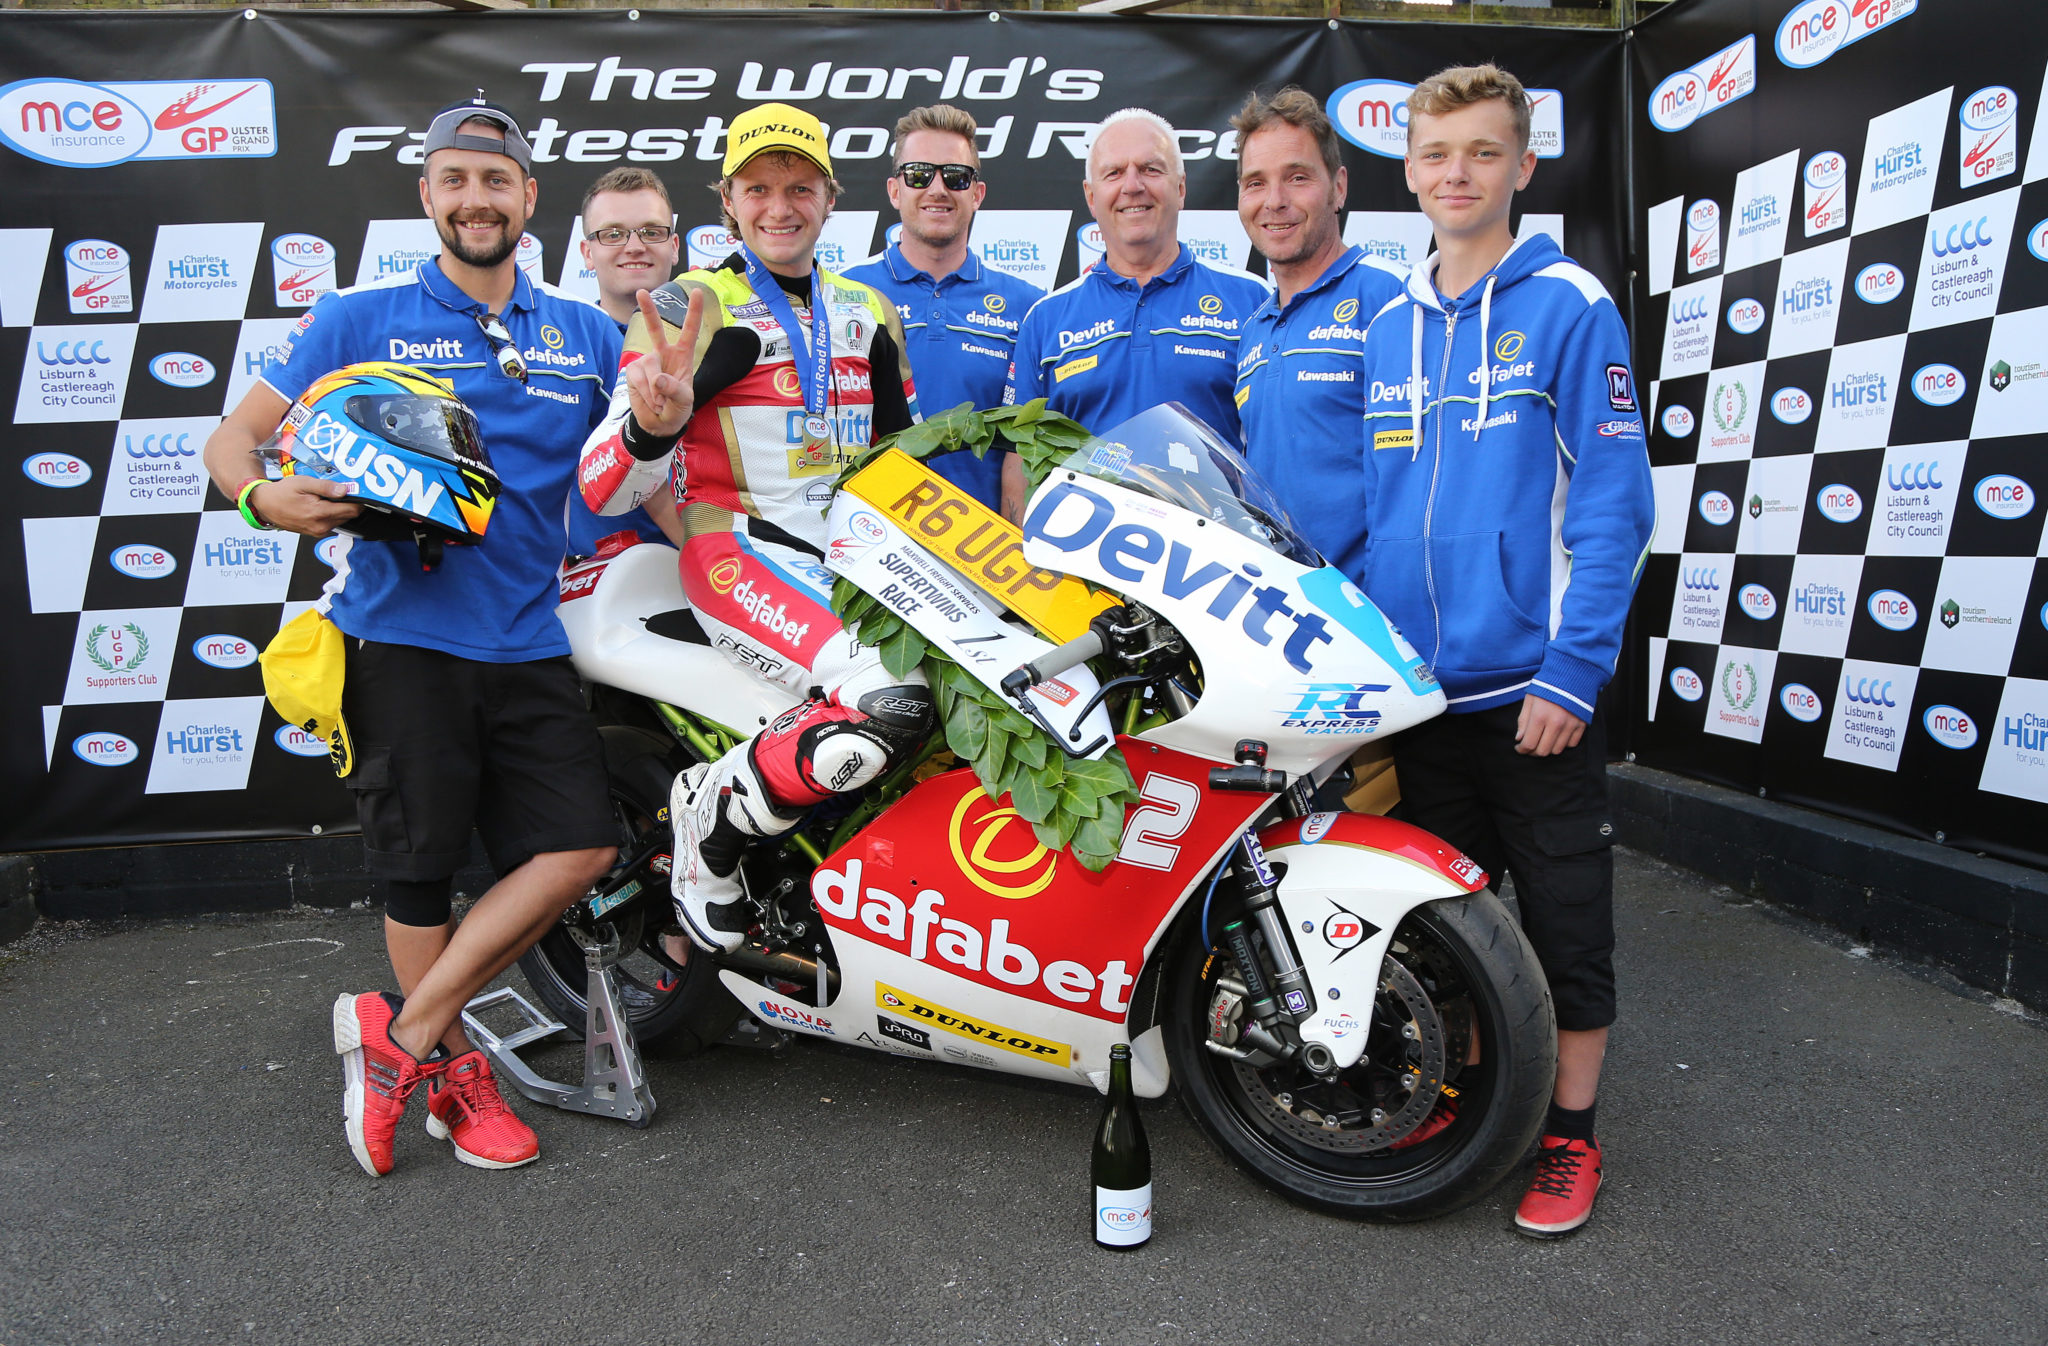 Dafabet Devitt Racing celebrate their Supertwin victory image credit Pacemaker Press International